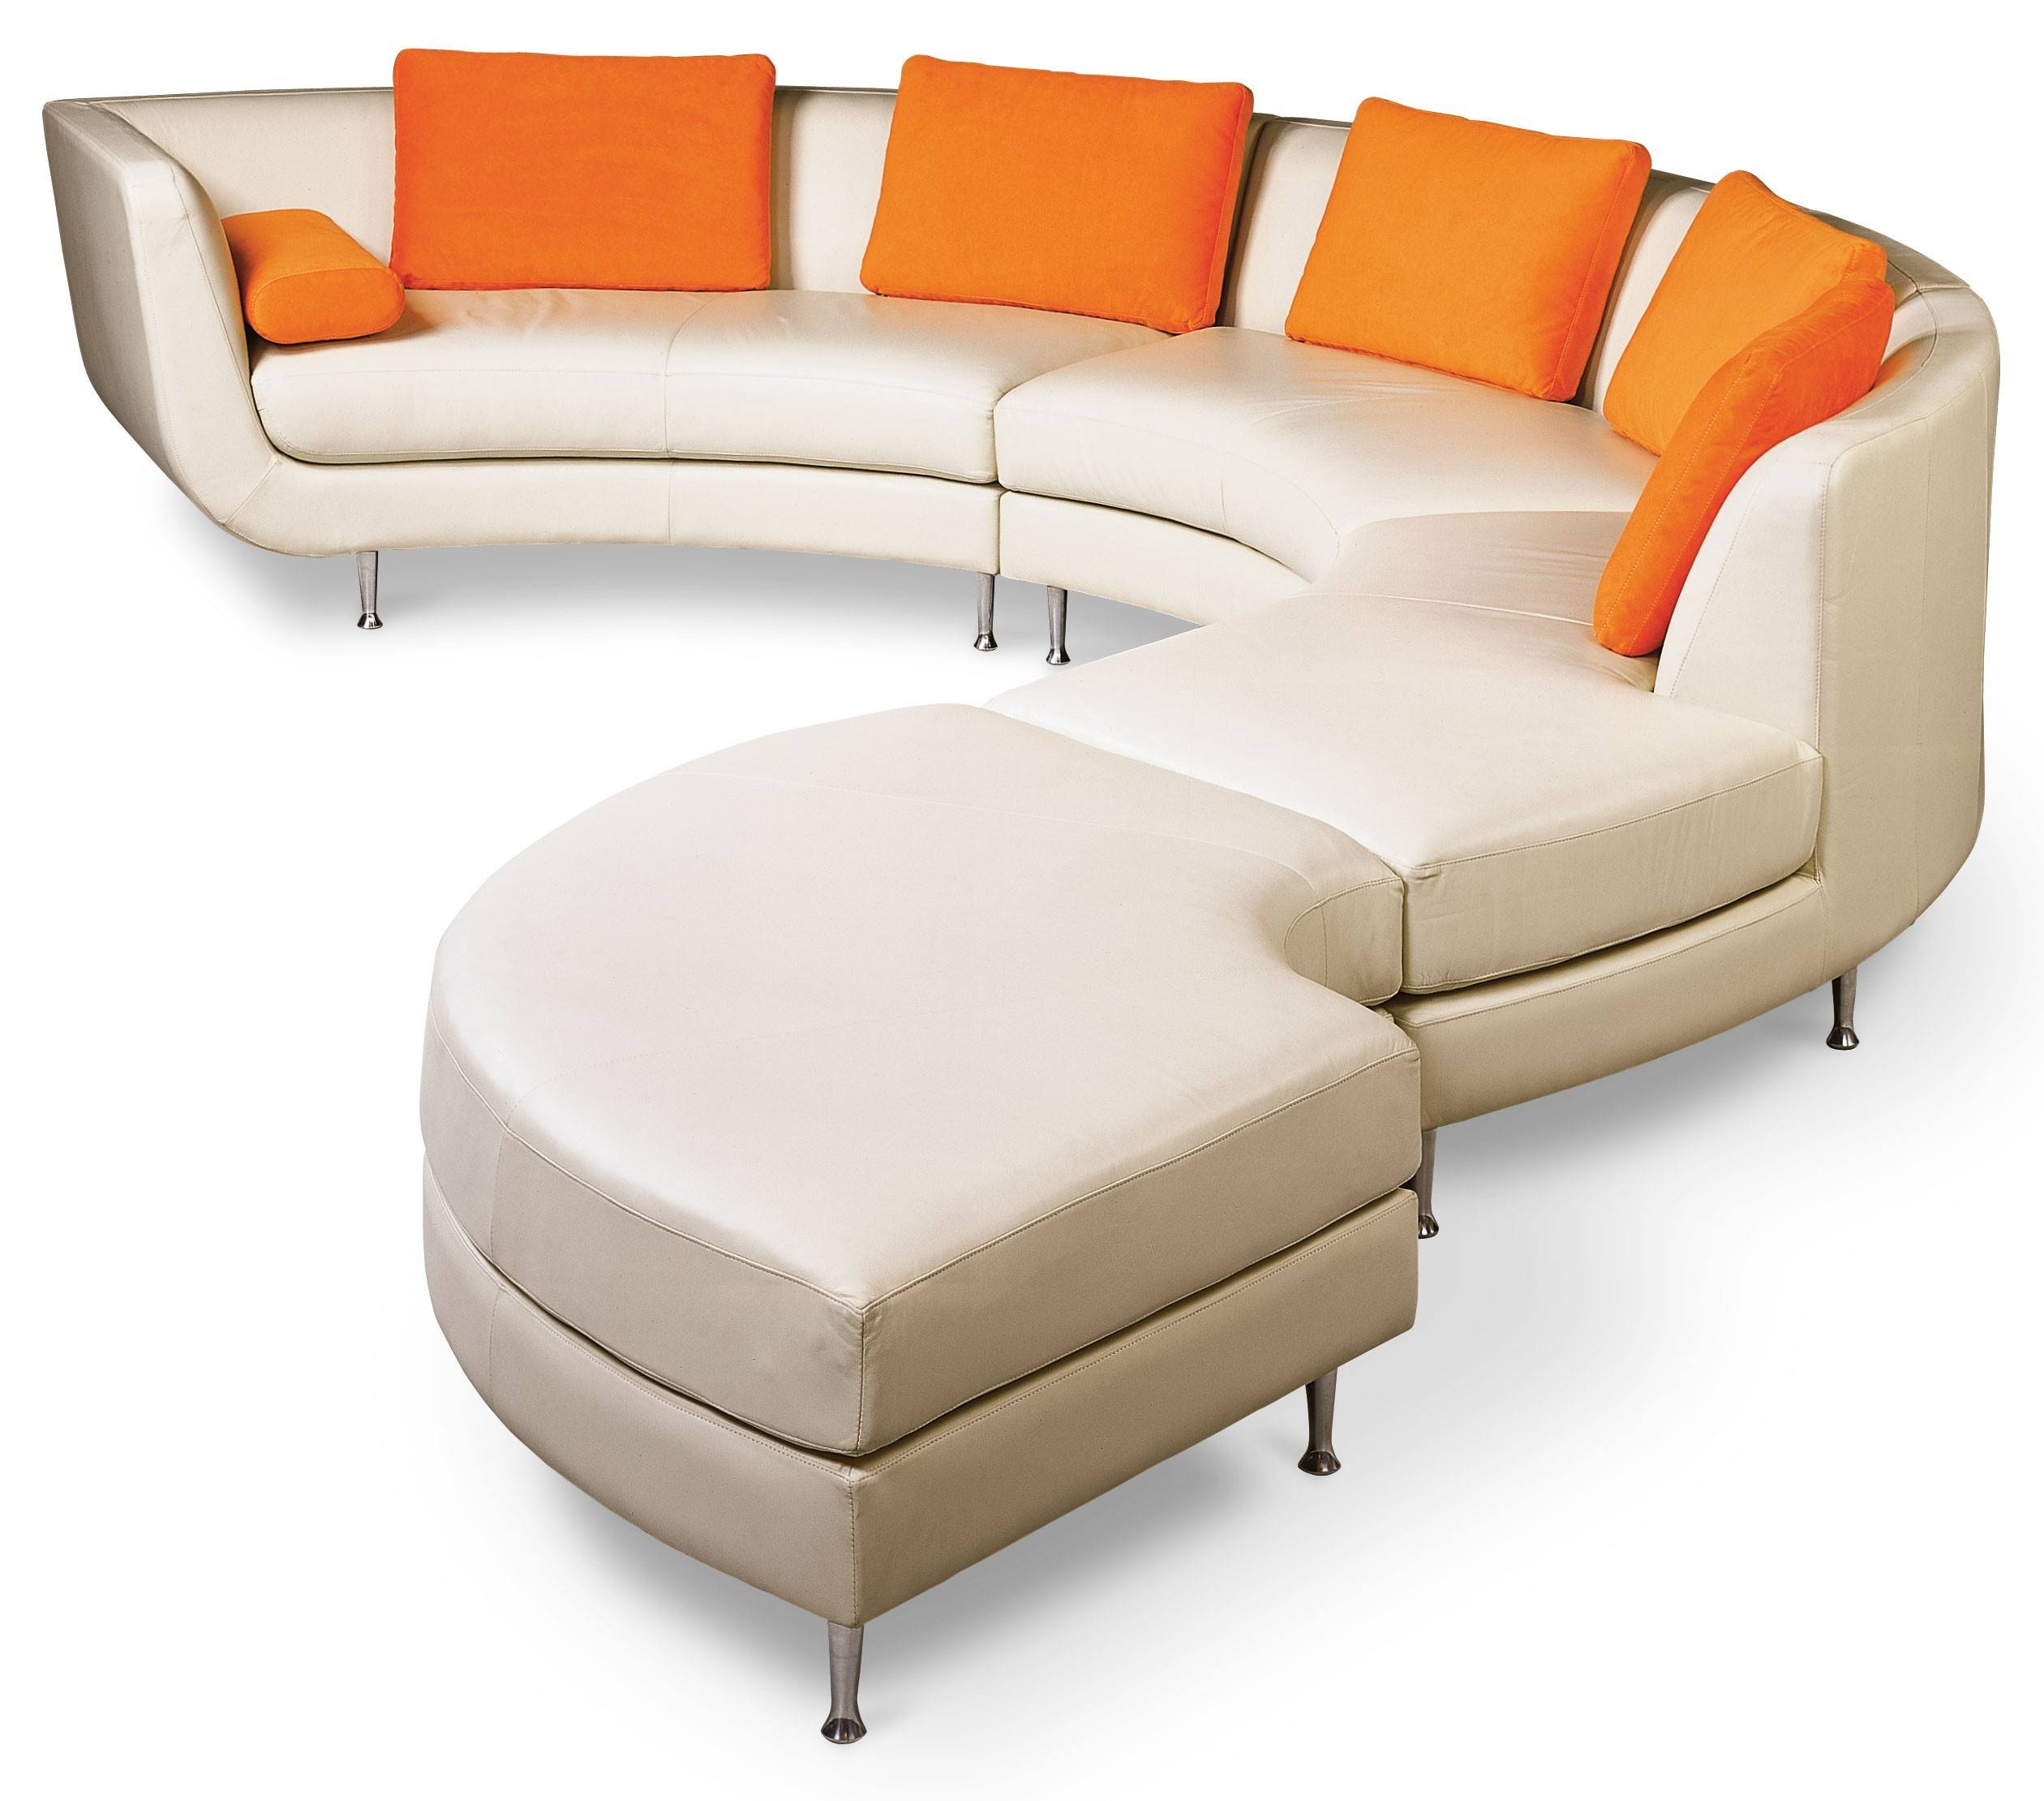 American Leather Menlo Park within American Made Sectional Sofas (Image 4 of 30)